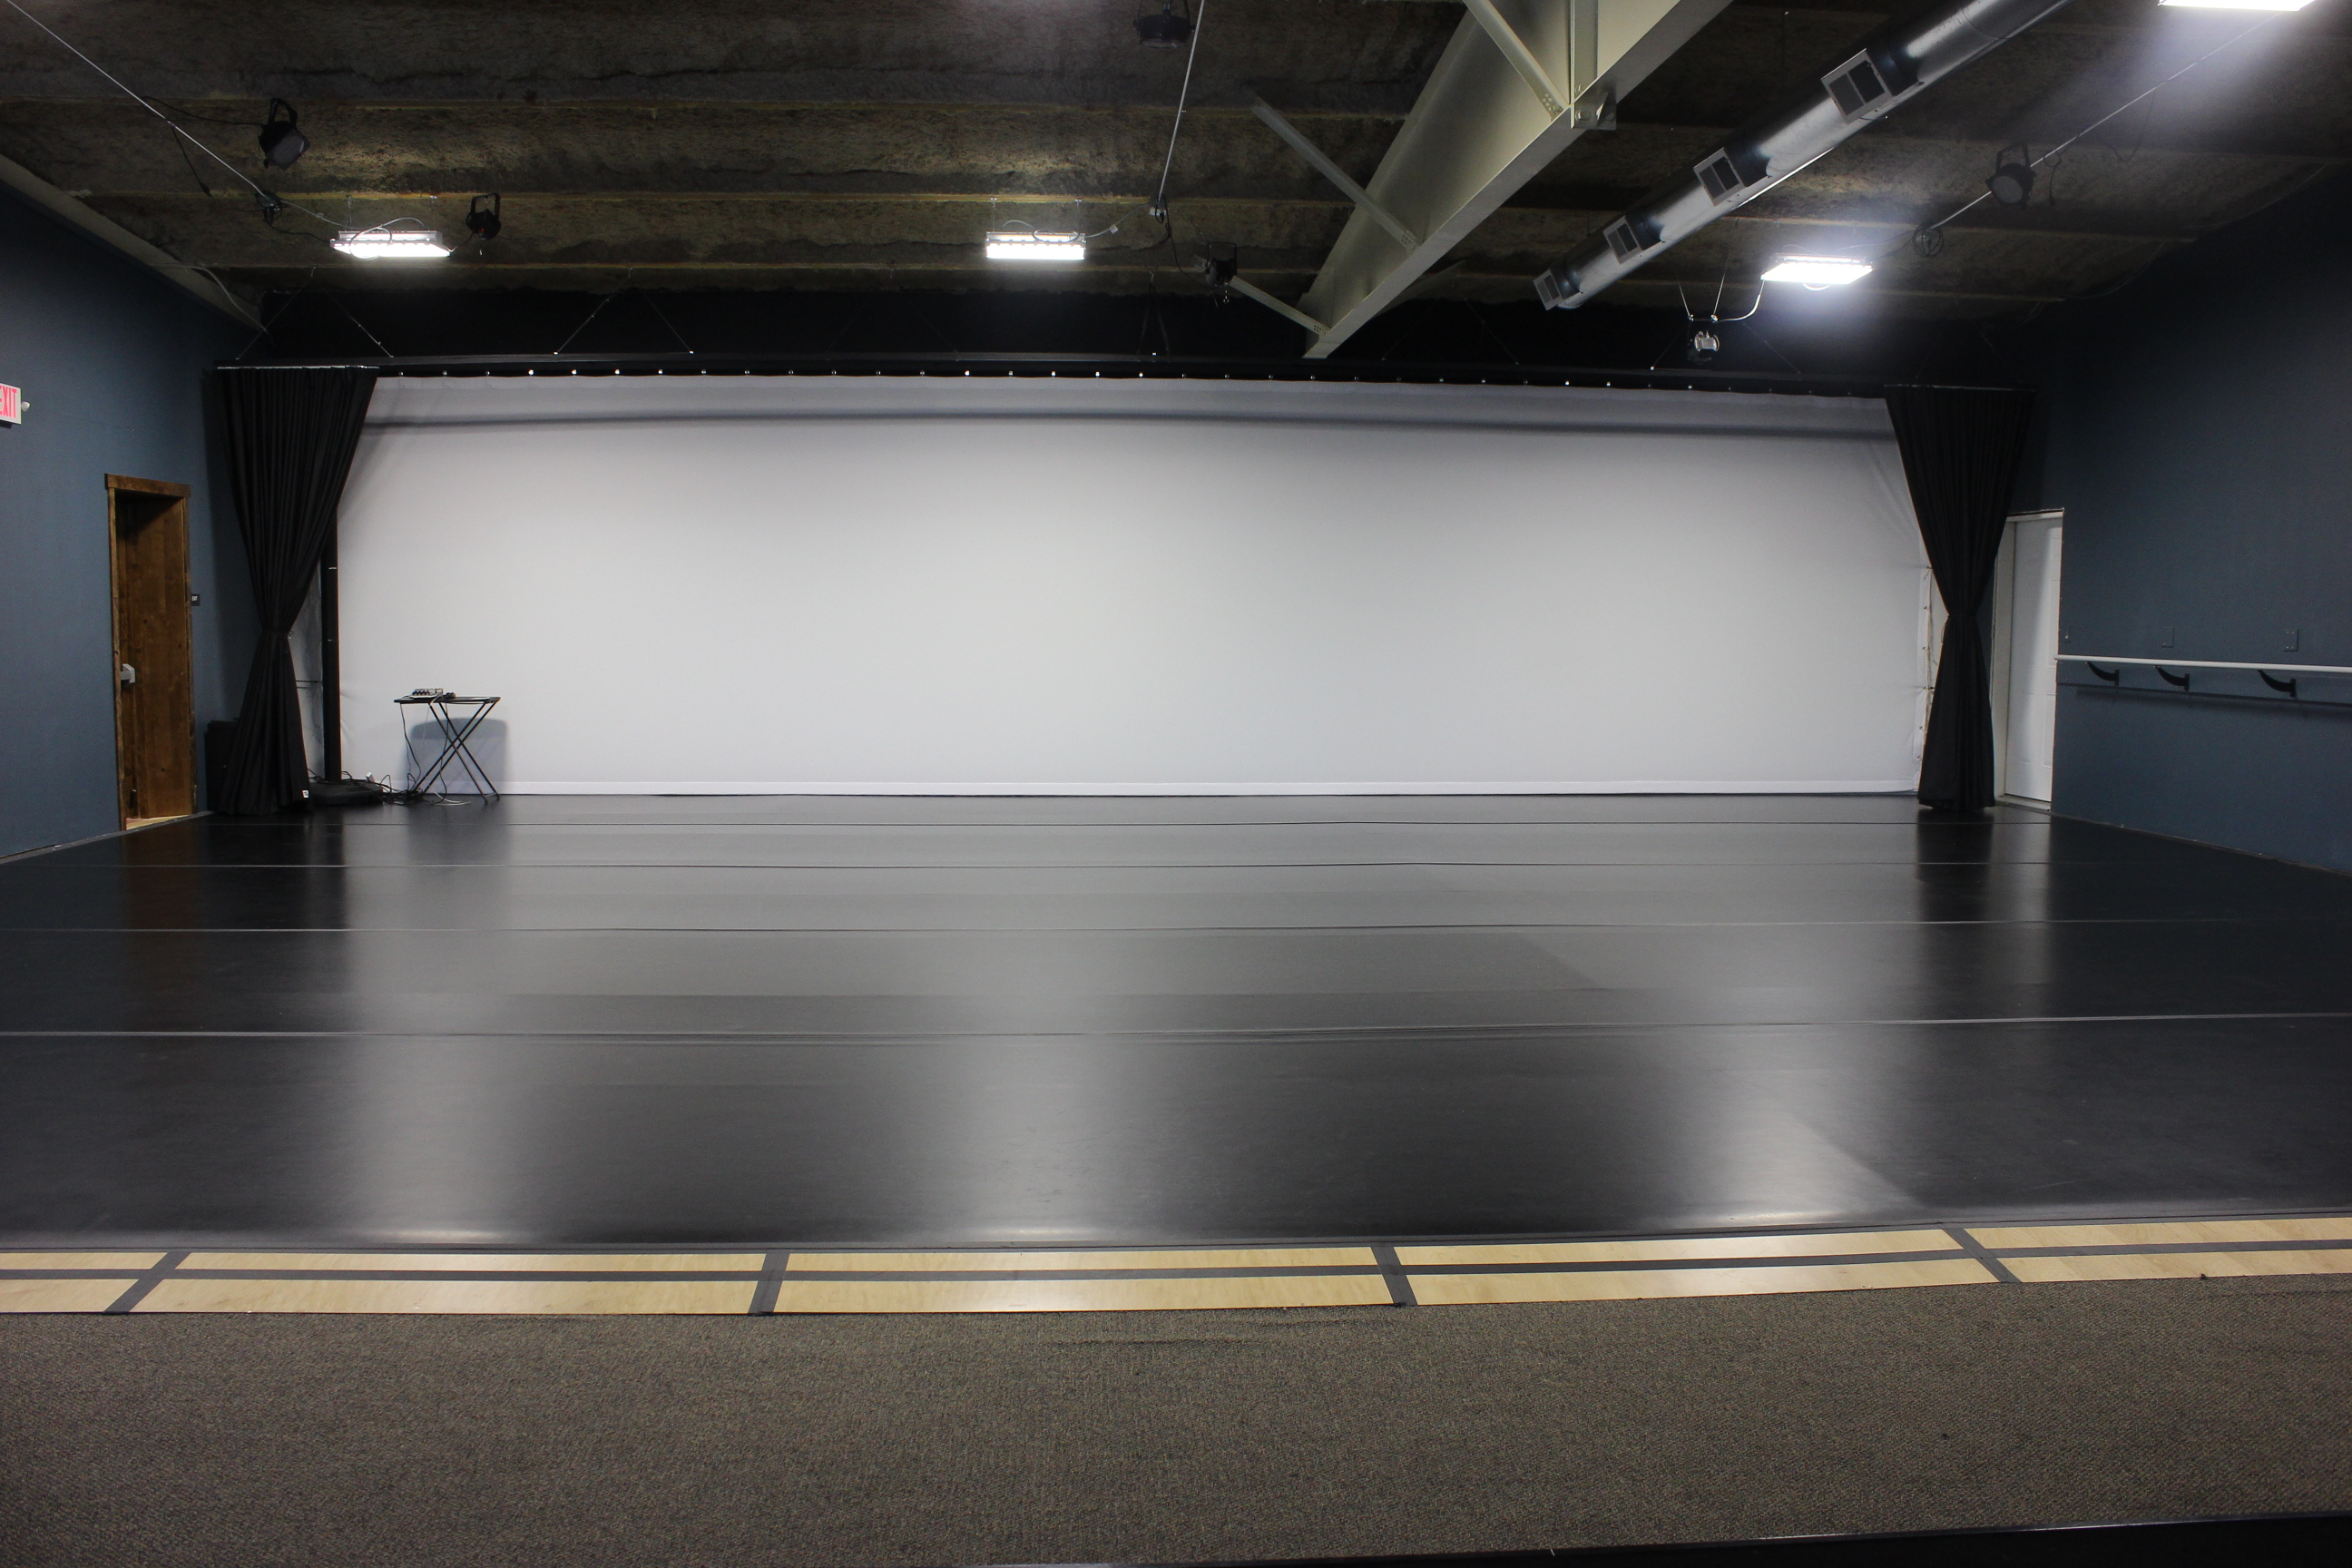 A large dance studio pictured with black marley flooring and a white cyc. A sound system sits in the corner.